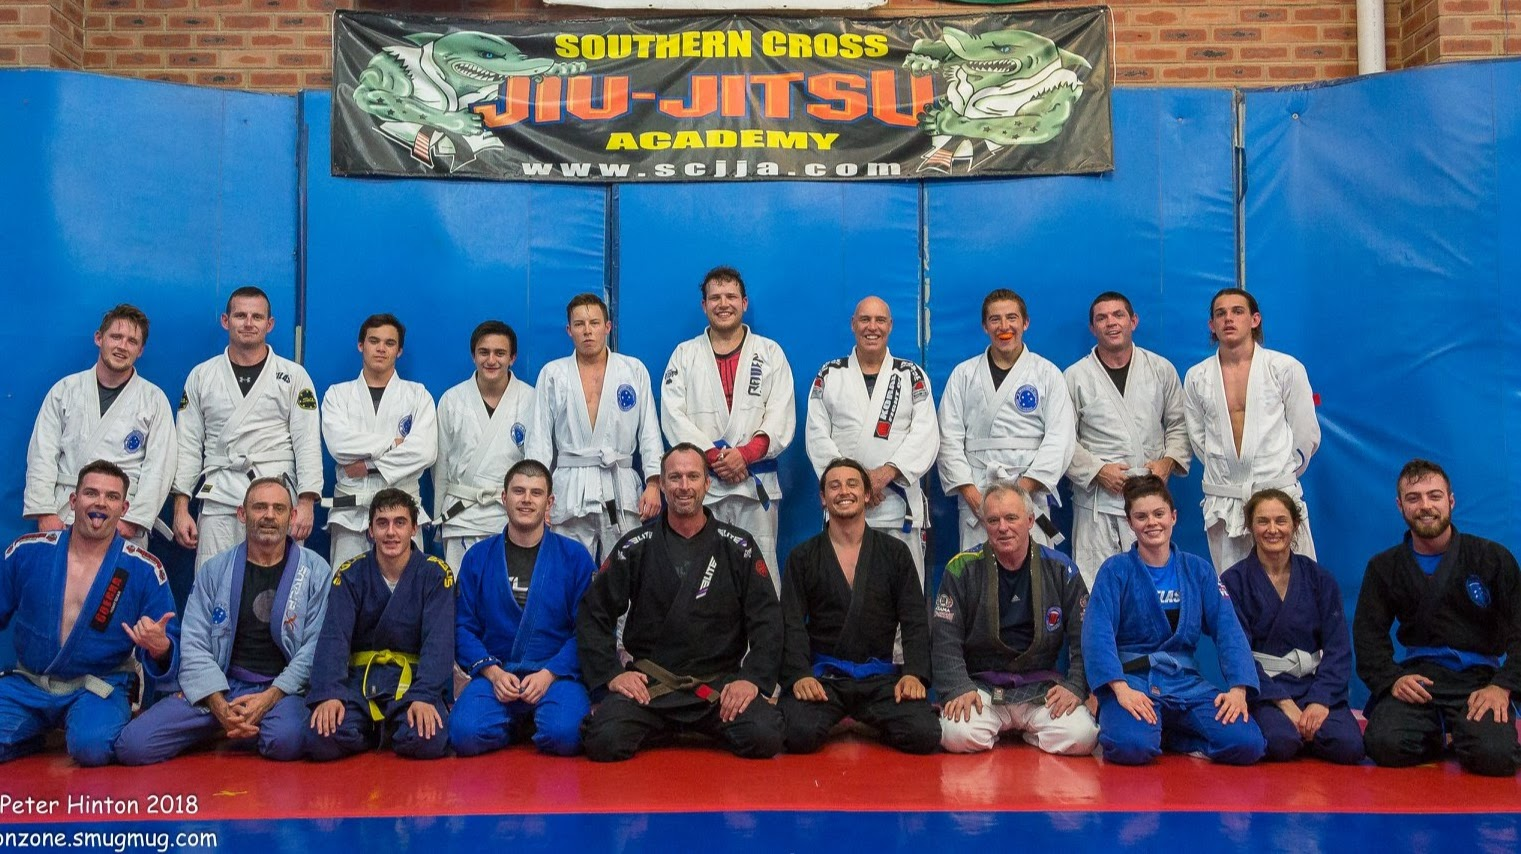 Southern Cross Jiu-Jitsu Academy - photo